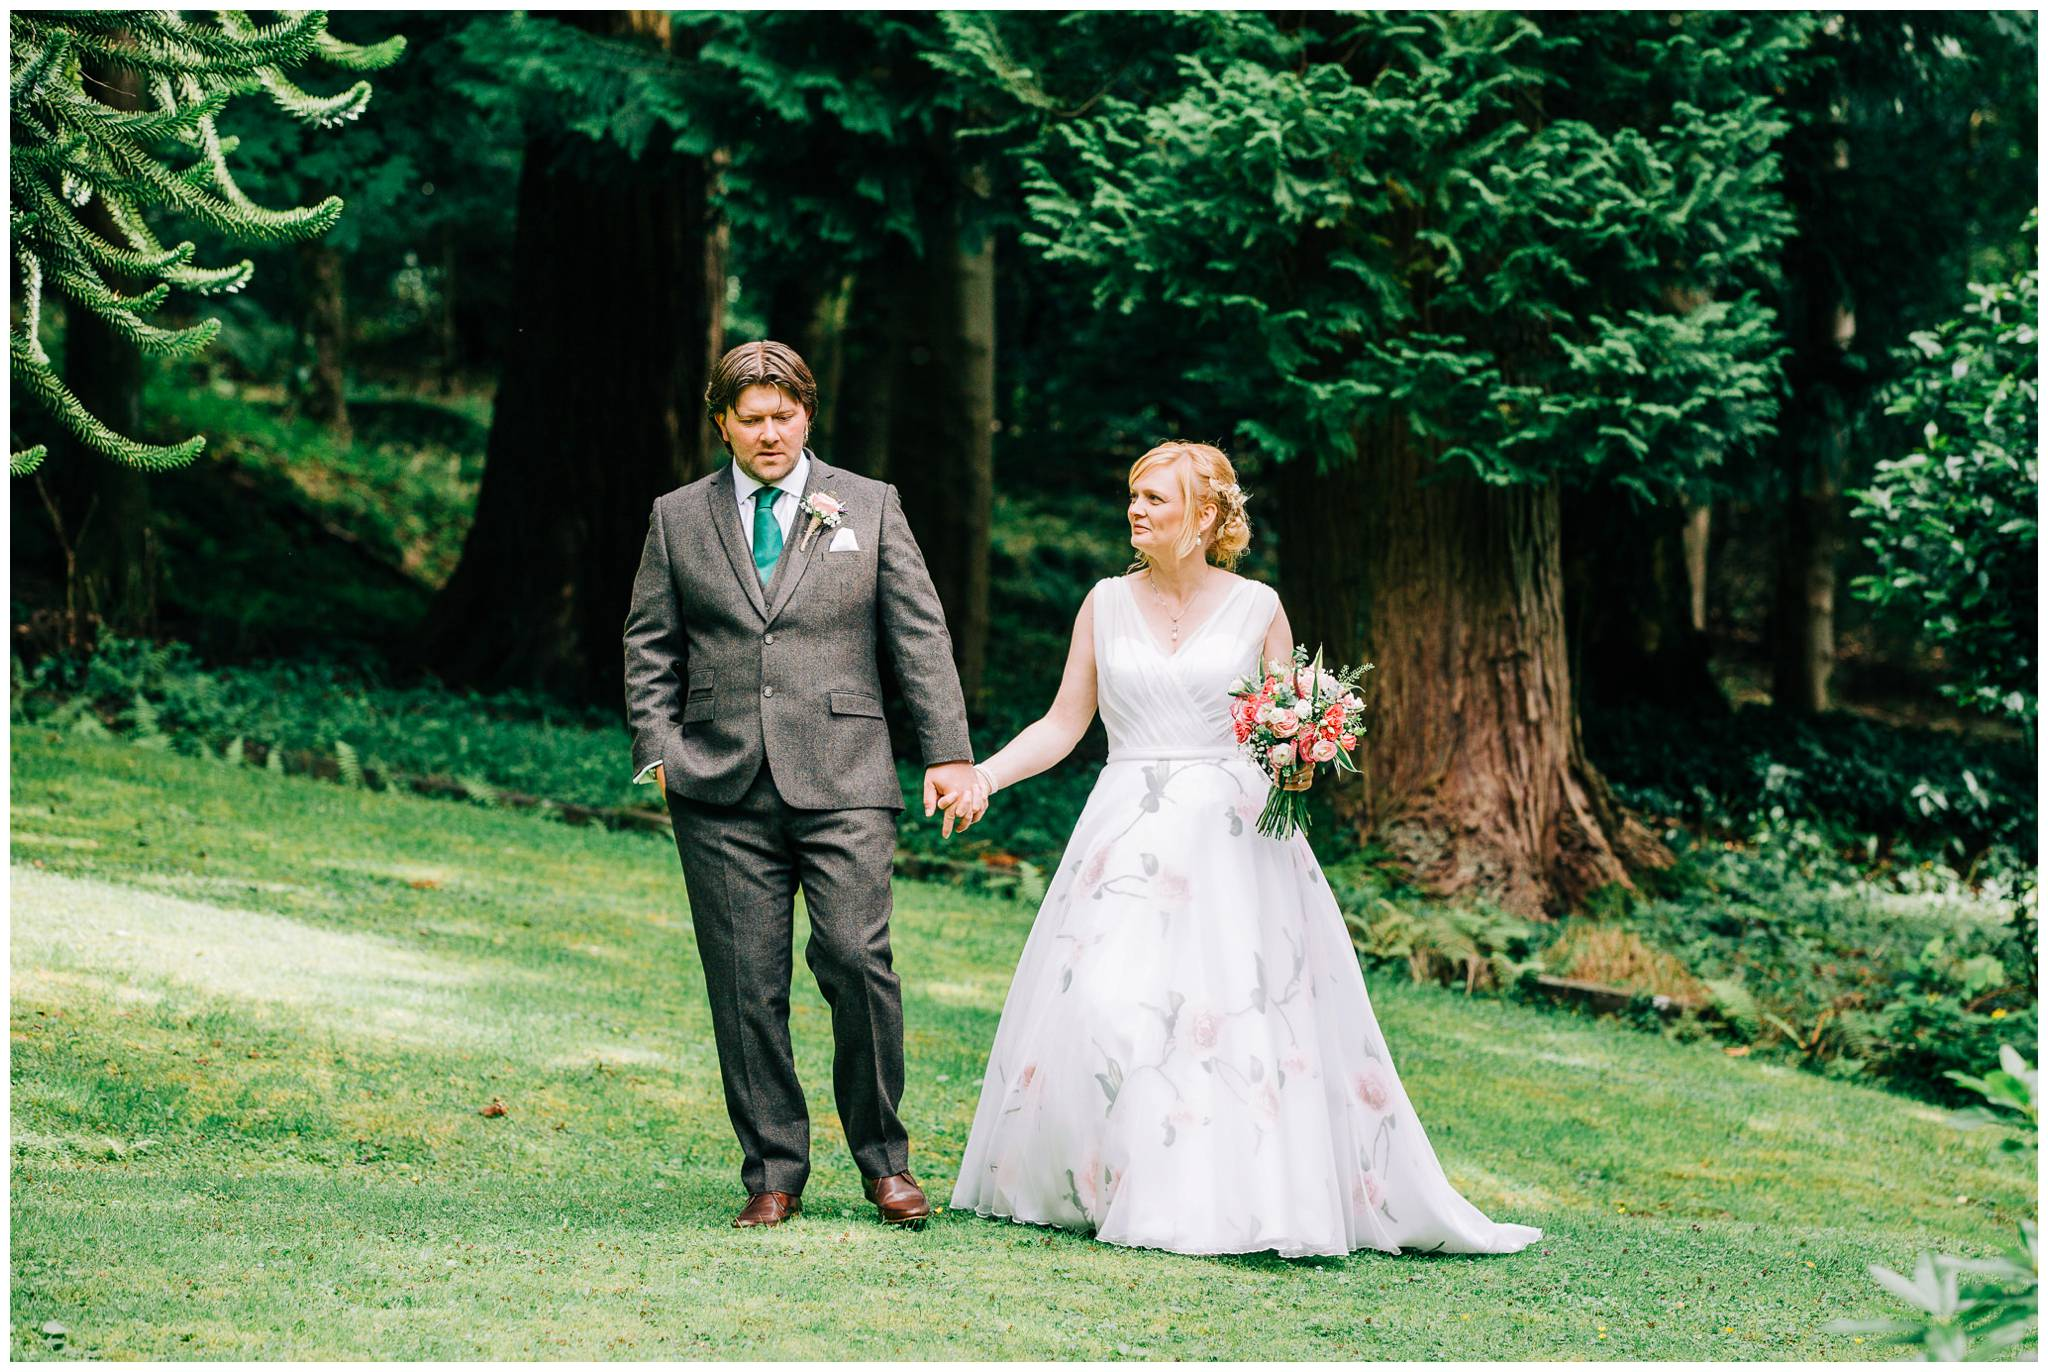 Natural wedding photography Manchester - Clare Robinson Photography_0198.jpg